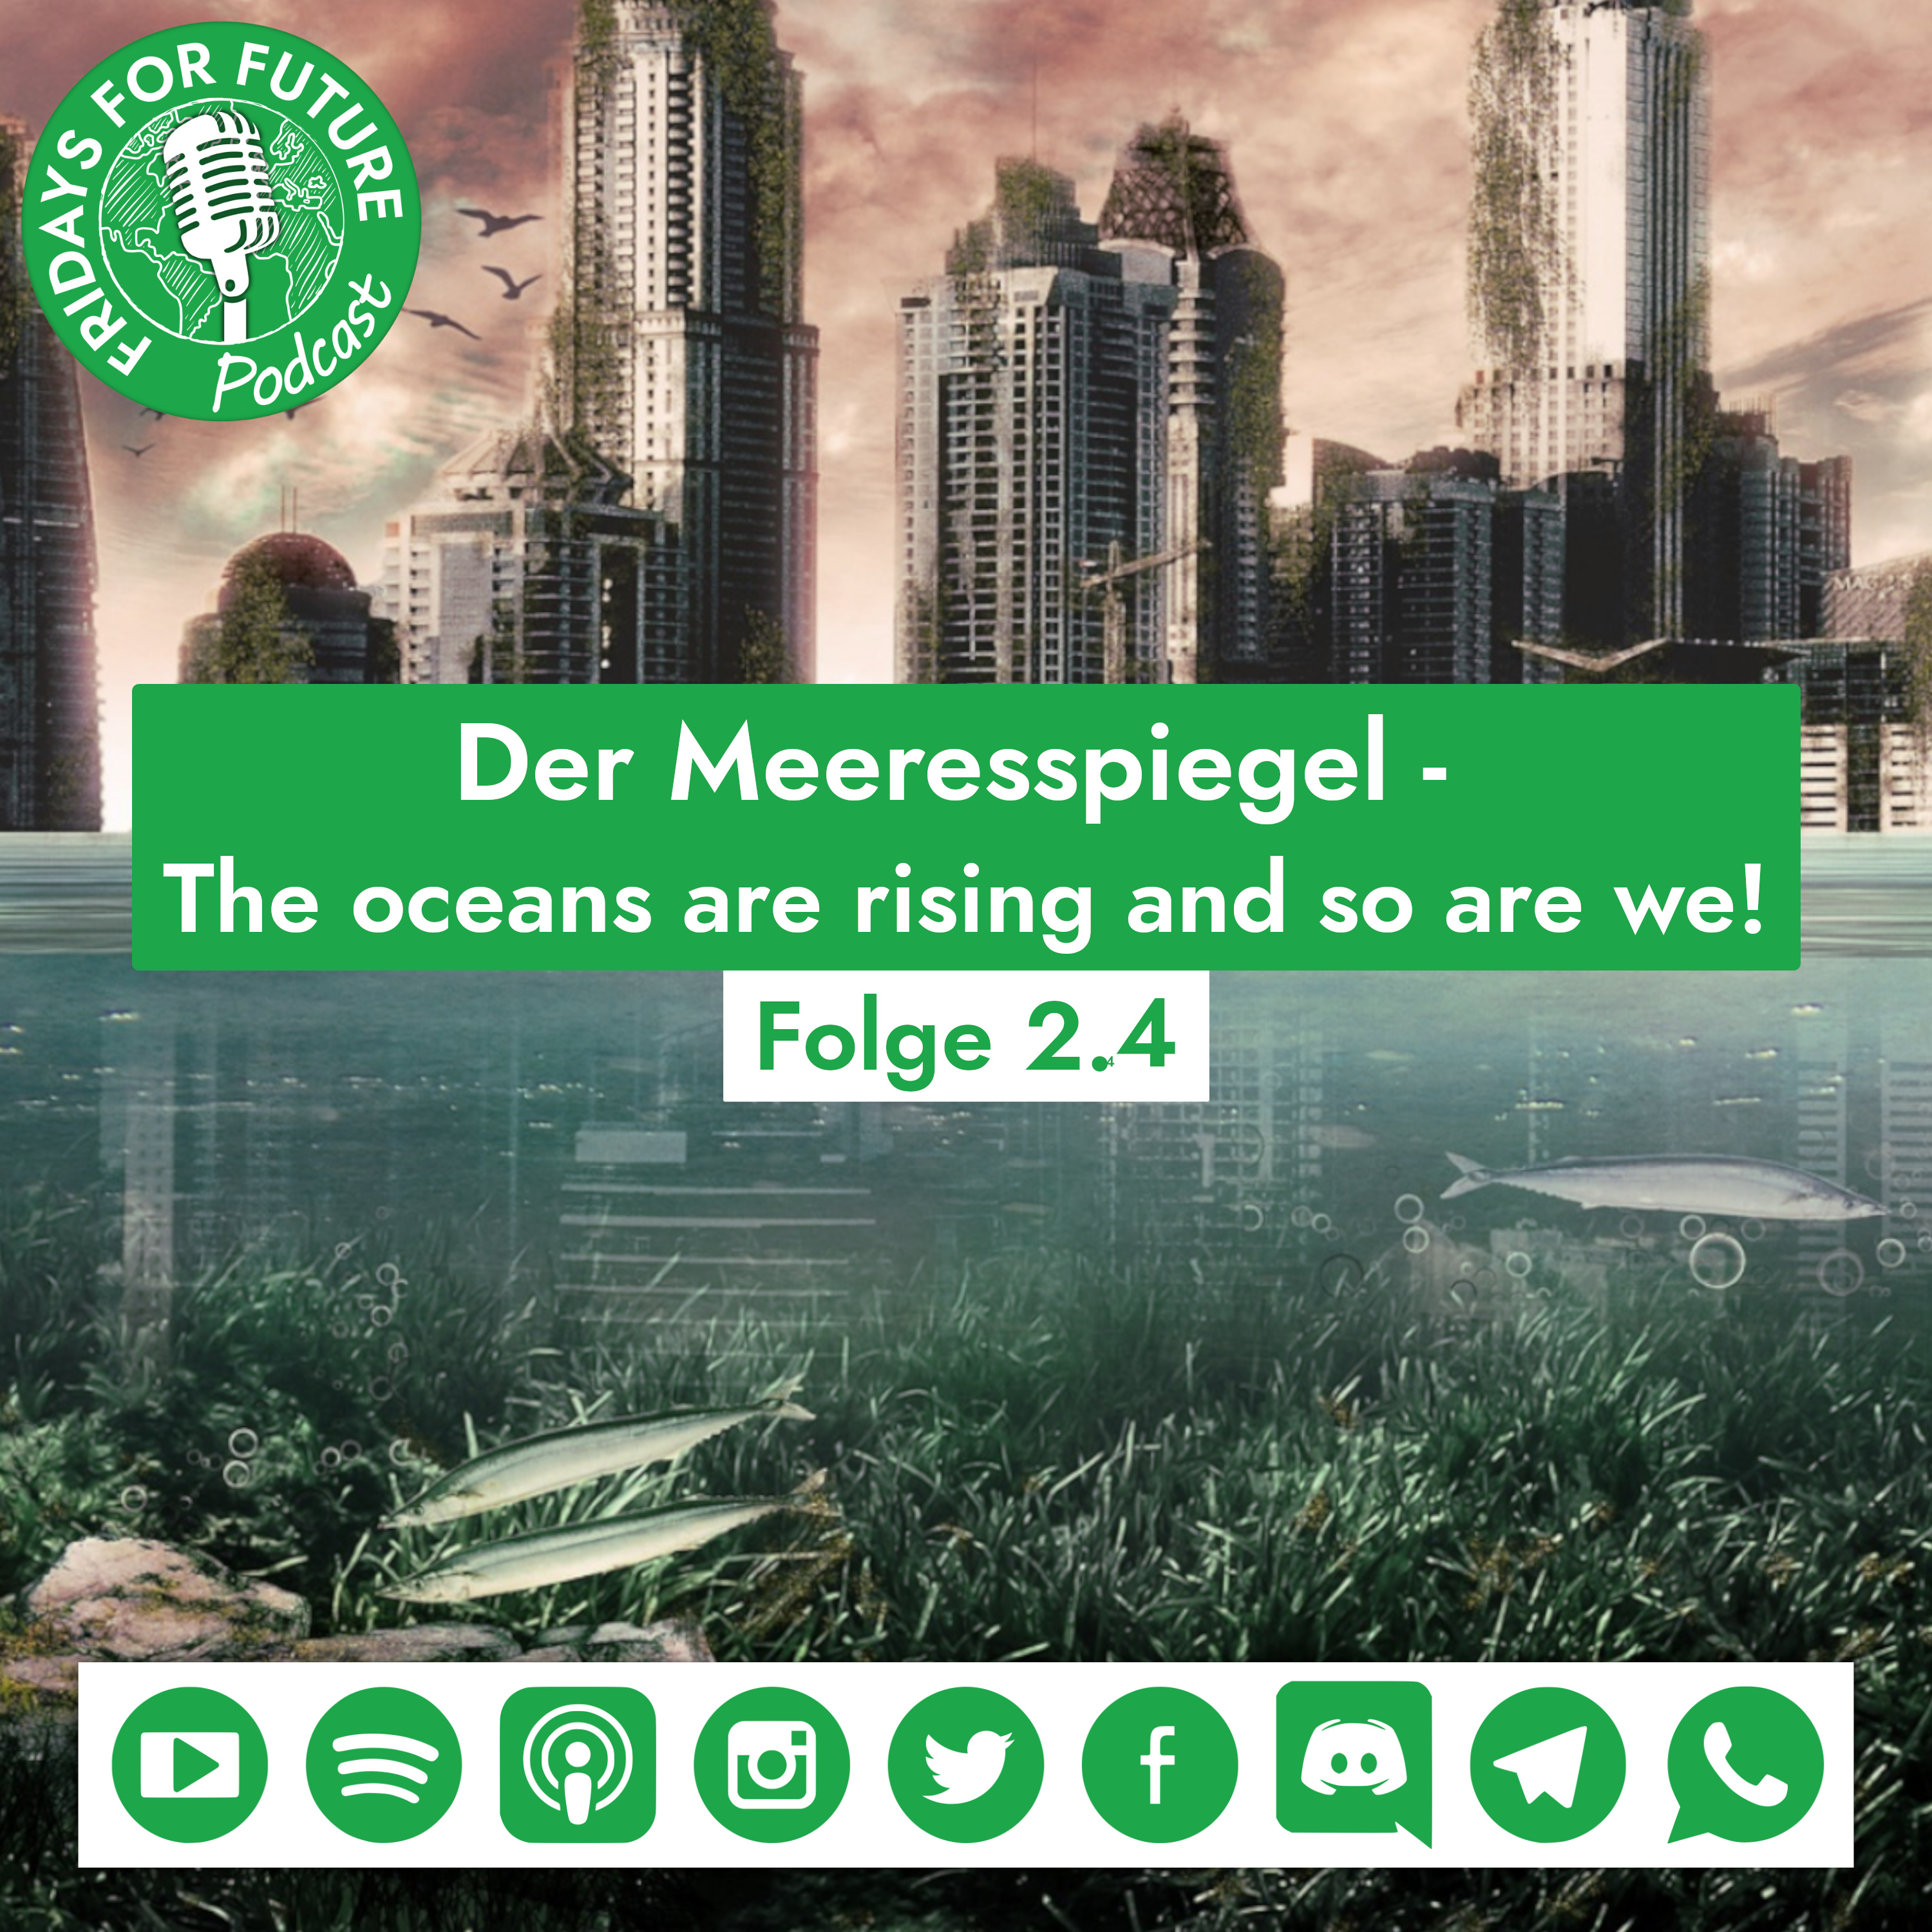 2.4 | Der Meeresspiegel - The oceans are rising and so are we!